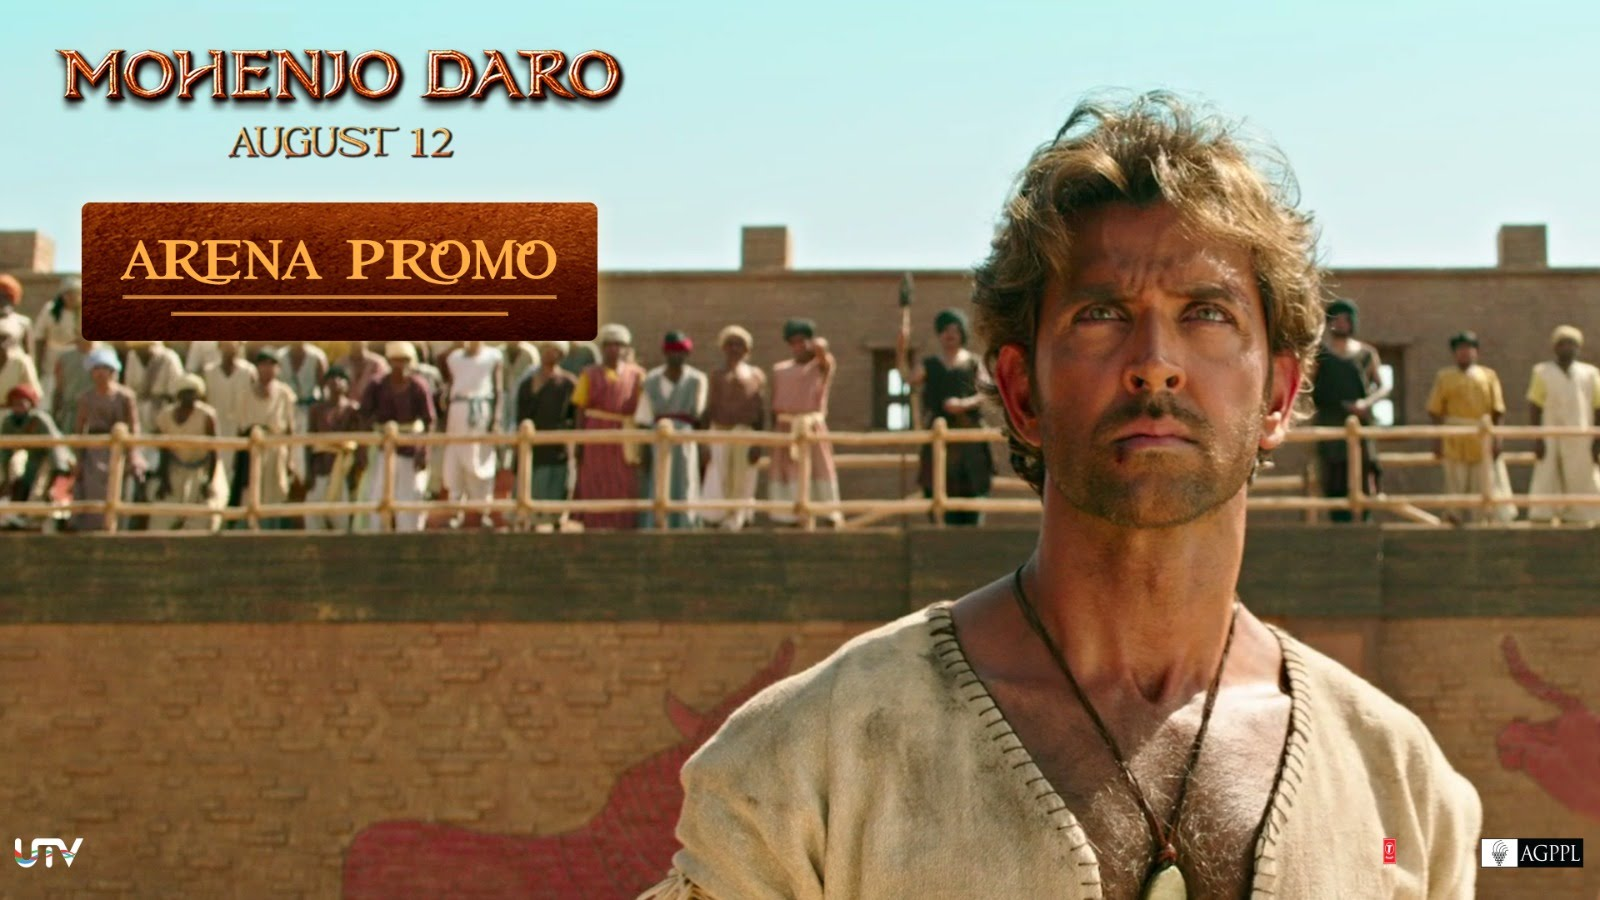 The new promo of Mohenjo Daro is full of some awesome action sequences!